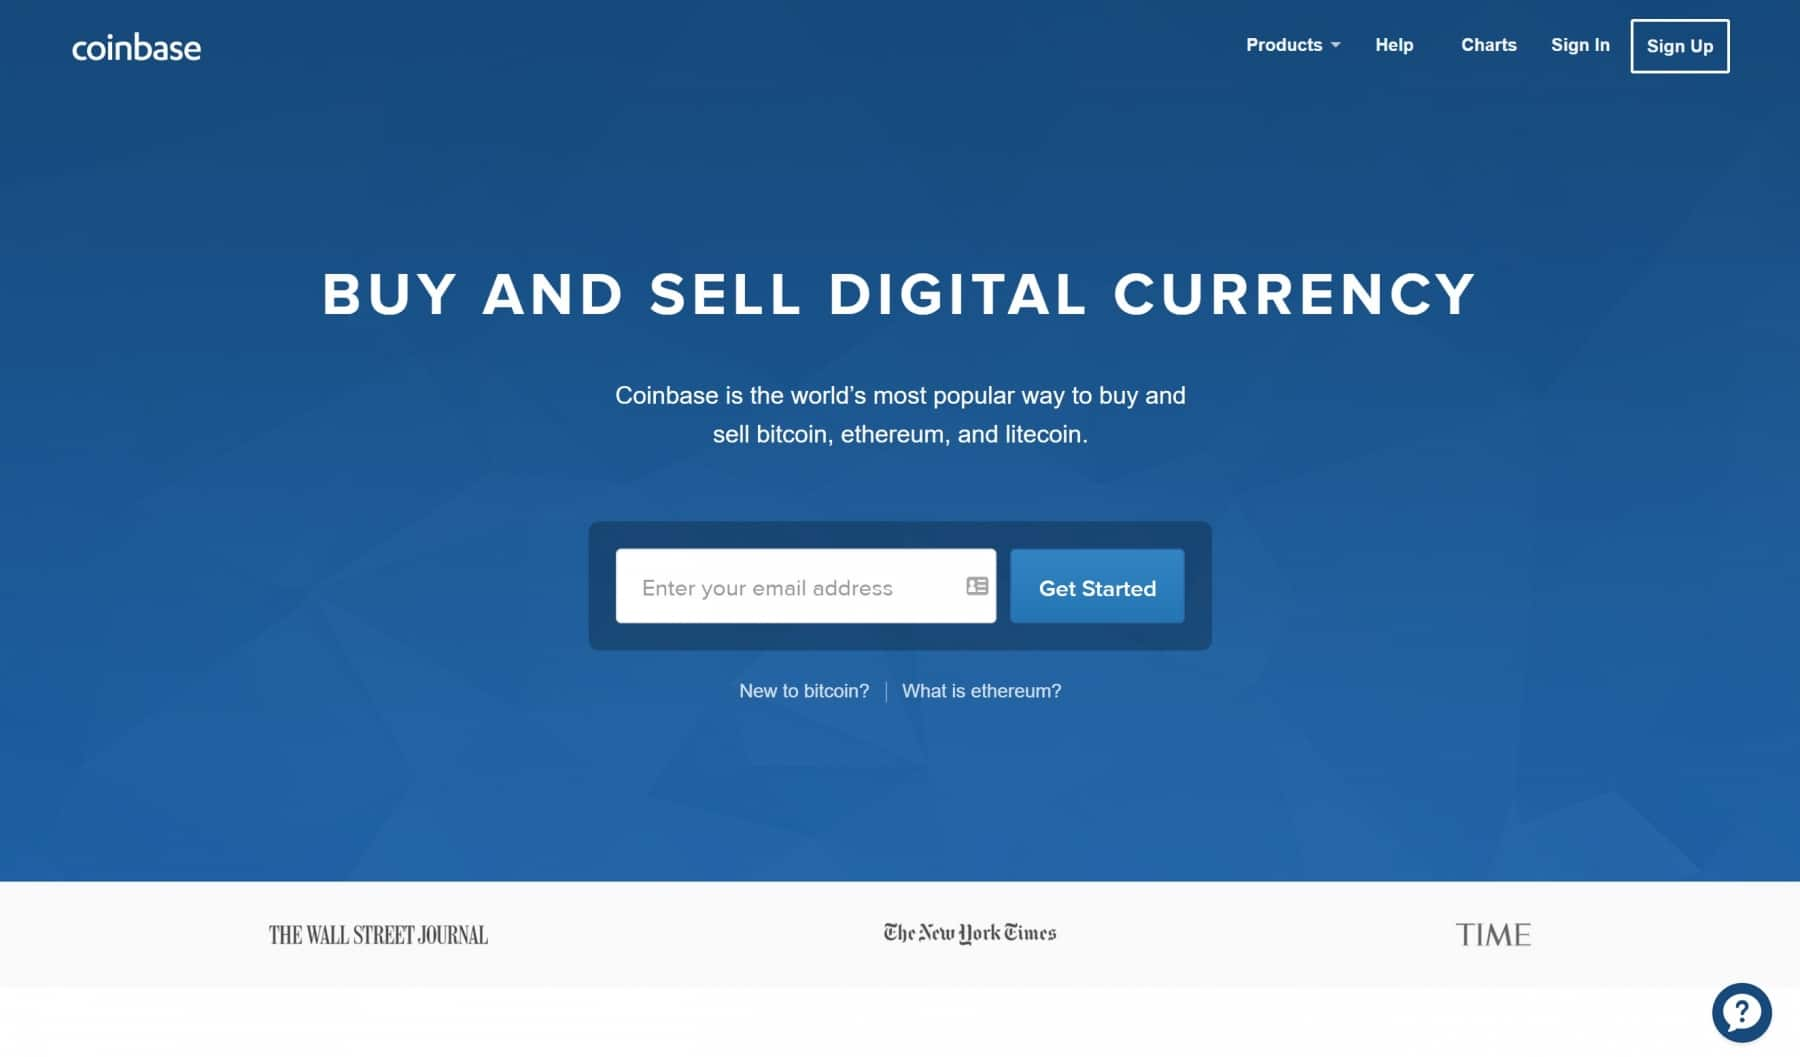 buy and sell digital currency